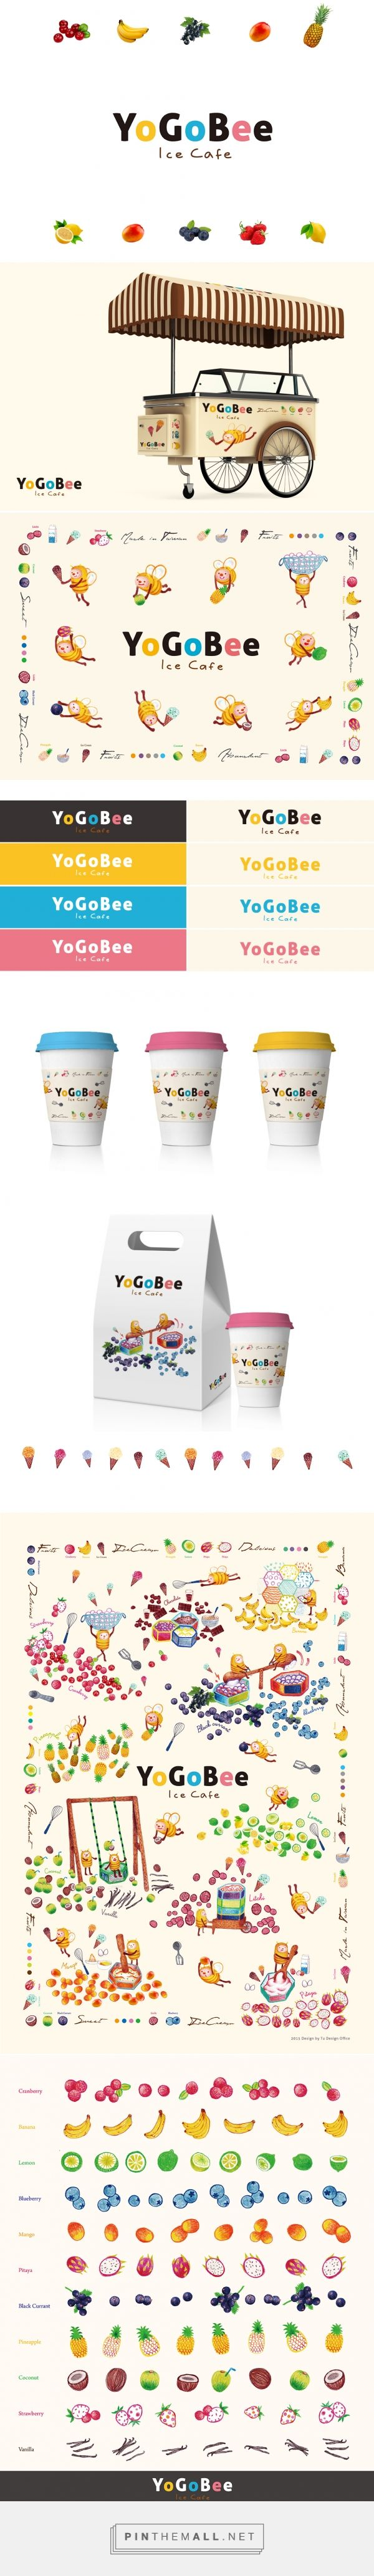 YoGoBee Ice Cafe logo packaging branding on Behance by Tu Min-Shiang curated by Packaging Diva PD. Cute and sweet : )